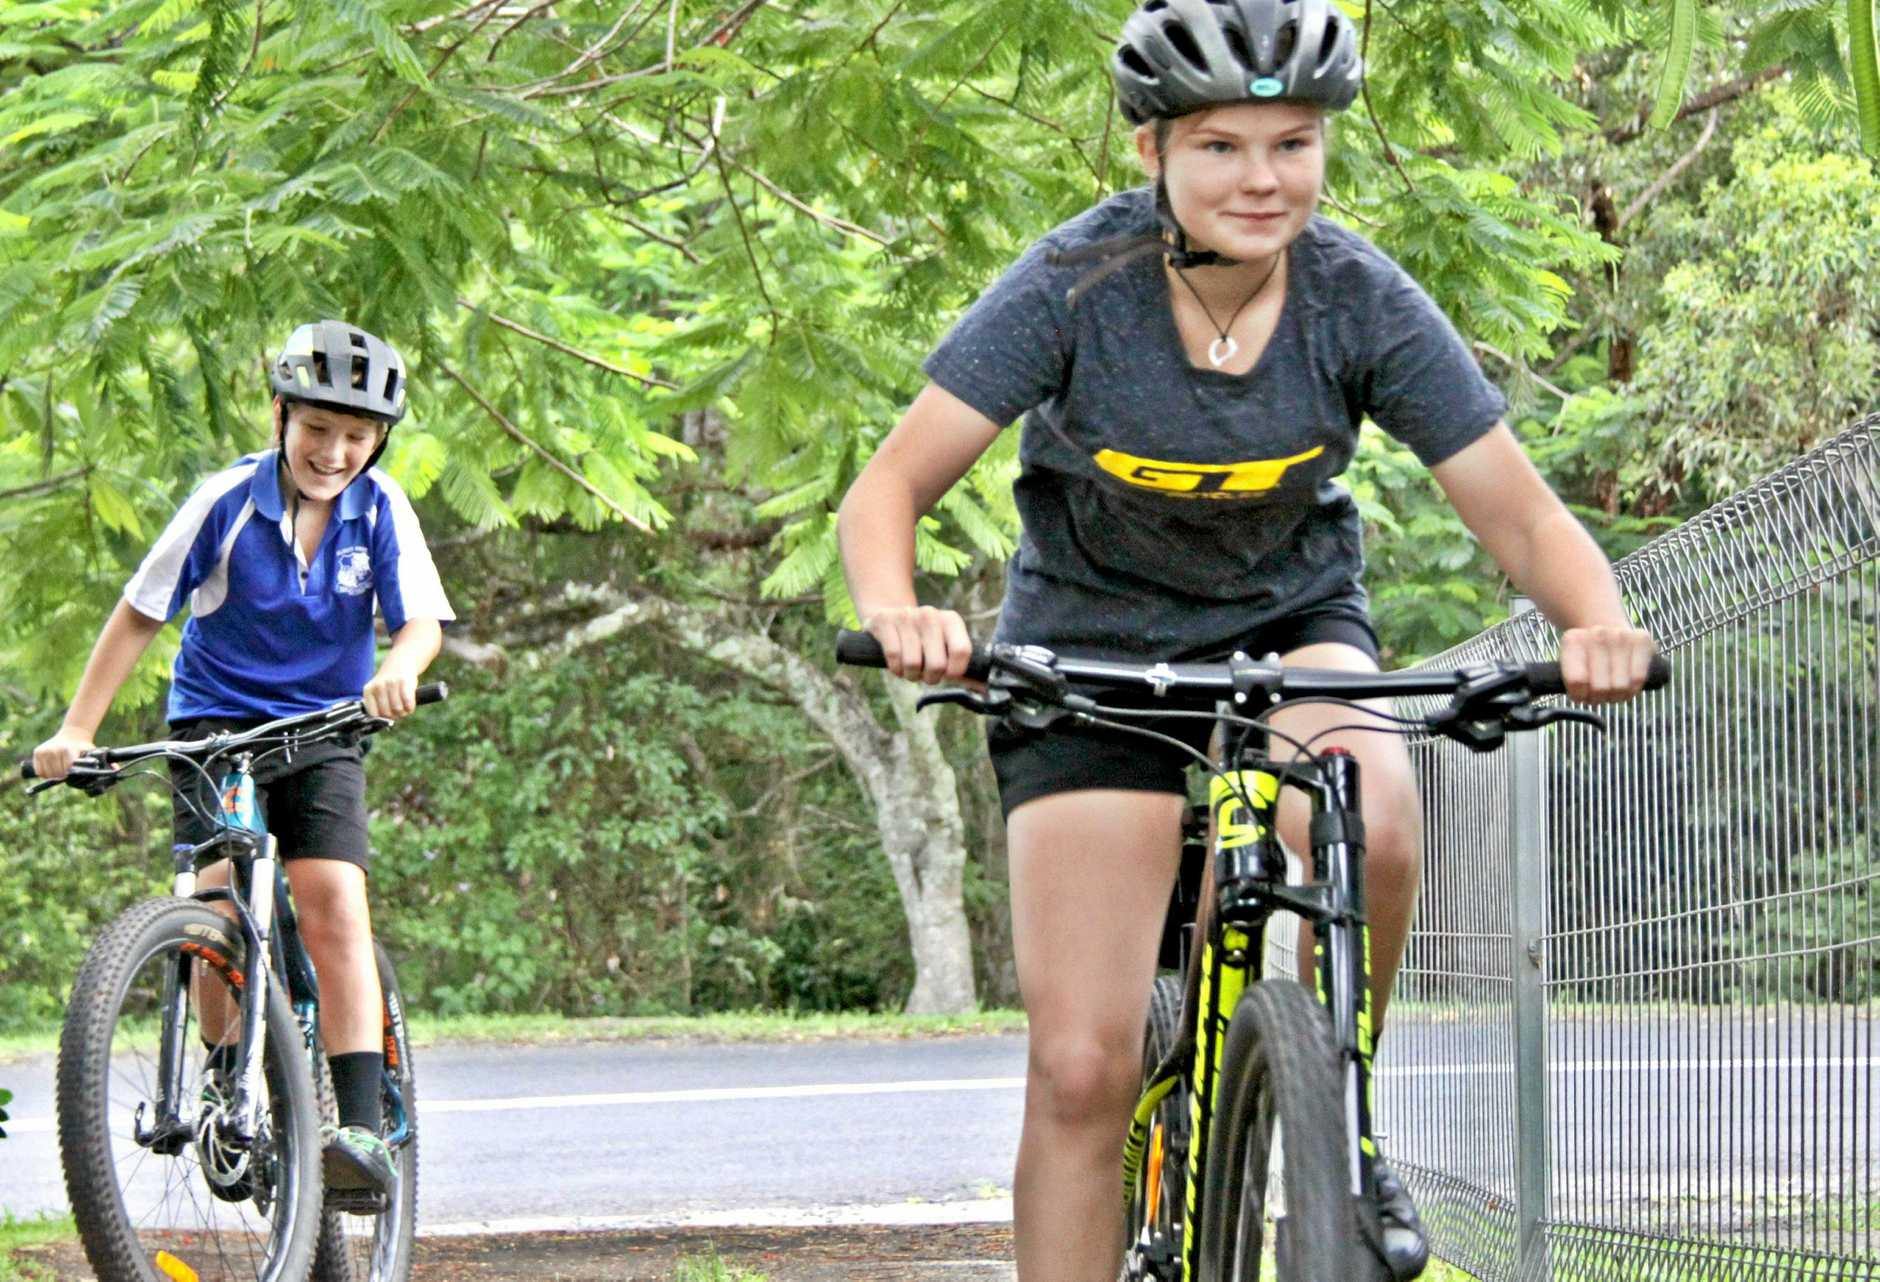 FREE BIKE SKILLS: Alex, 10, and Gemma, 13, are looking forward to joining in one of the three free Aboriginal Bikes Safety Courses which are open to all children and will be held at Casino, Coraki and Tabulam over the April School Holidays.